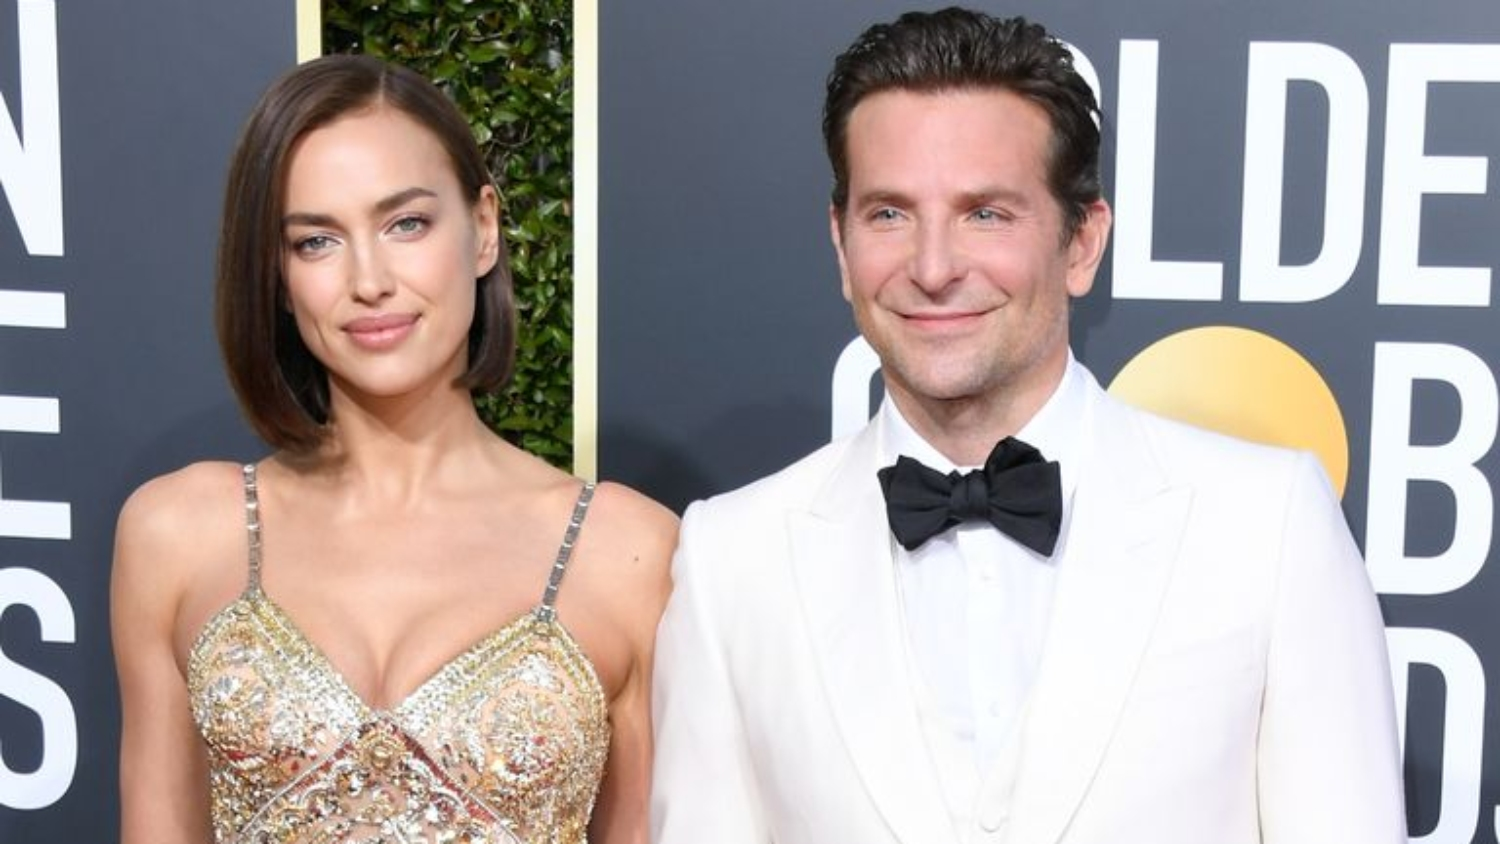 Bradley Cooper and Irina Shayk Reunited at a BAFTAs After-Party